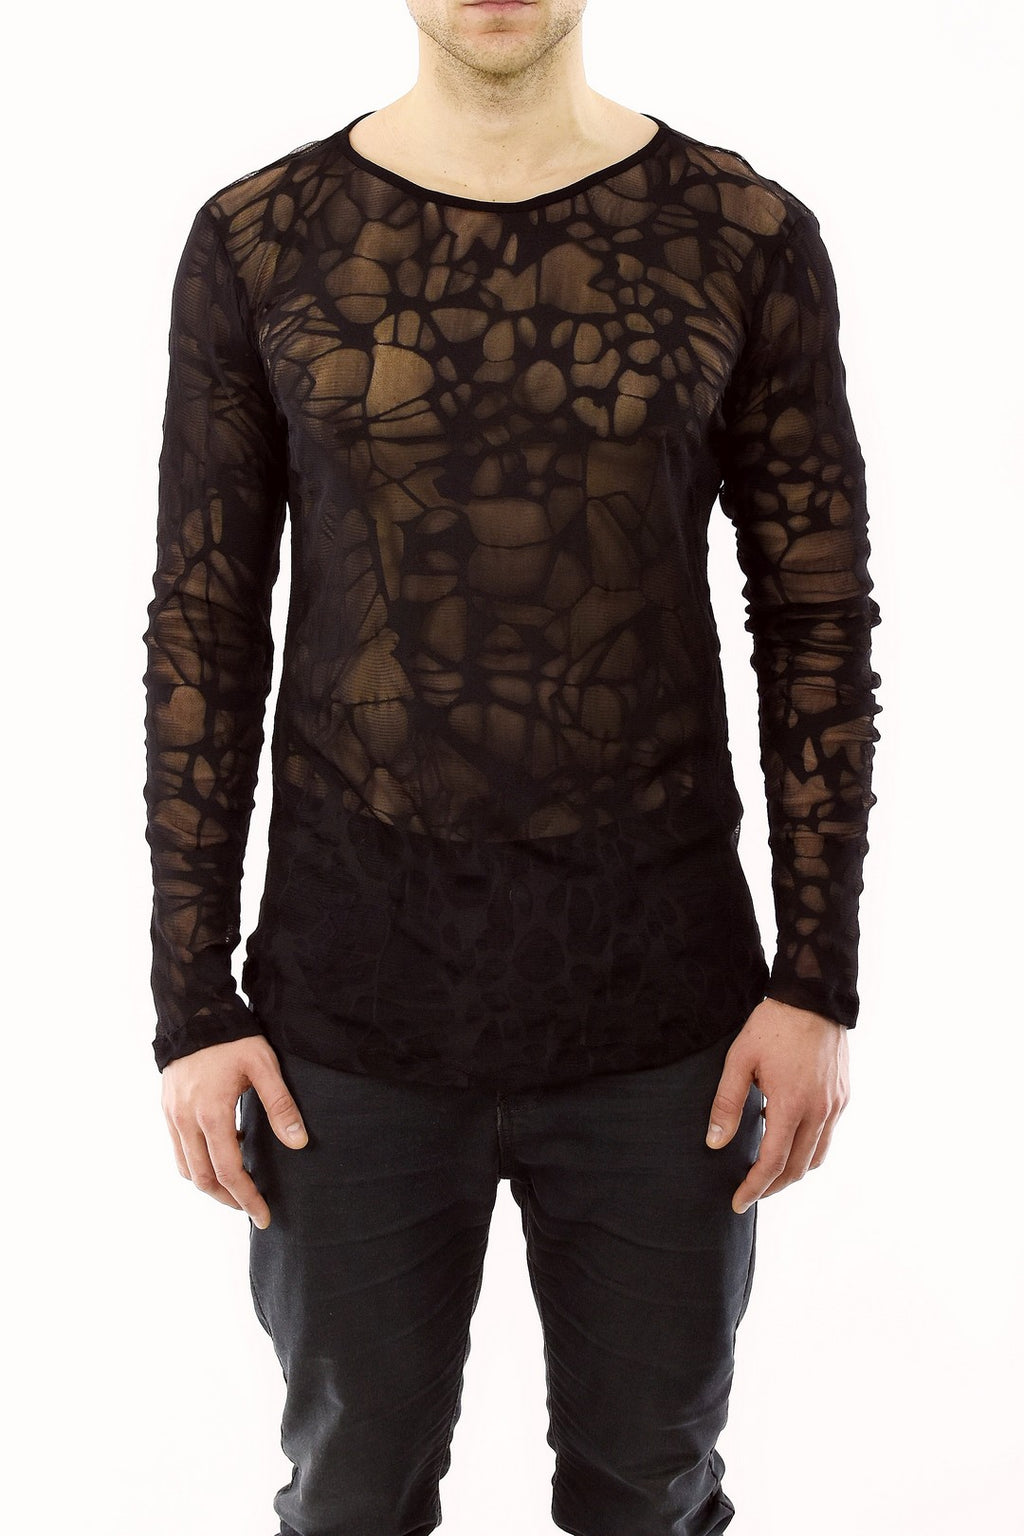 Mens Black Burnout Mesh T shirt ZG5219